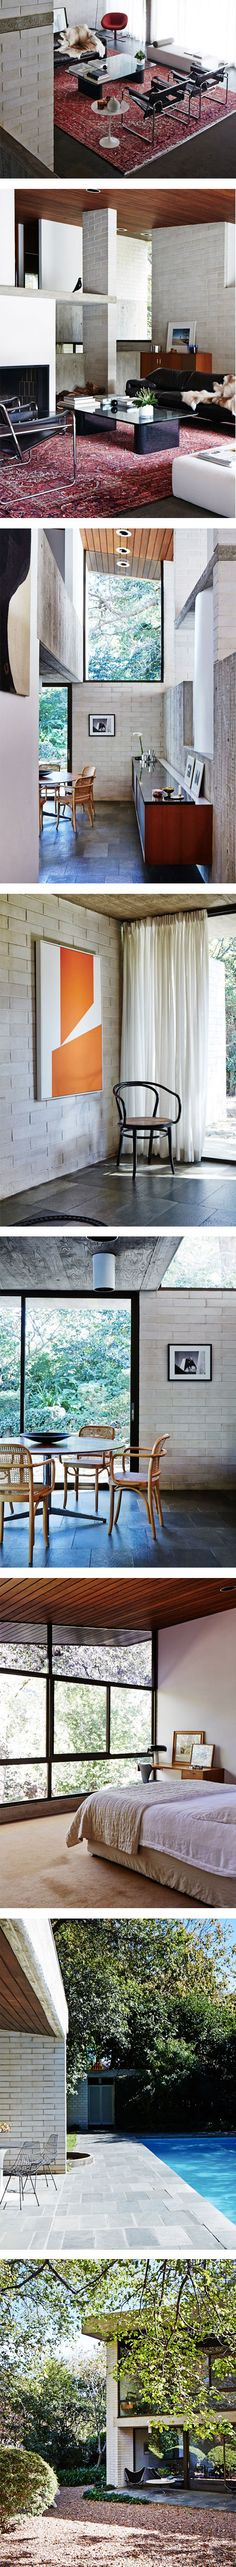 The Gissing House in Sydney by Harry Seidler on Nuji.com #gissinghouse #harryseidler #sydney